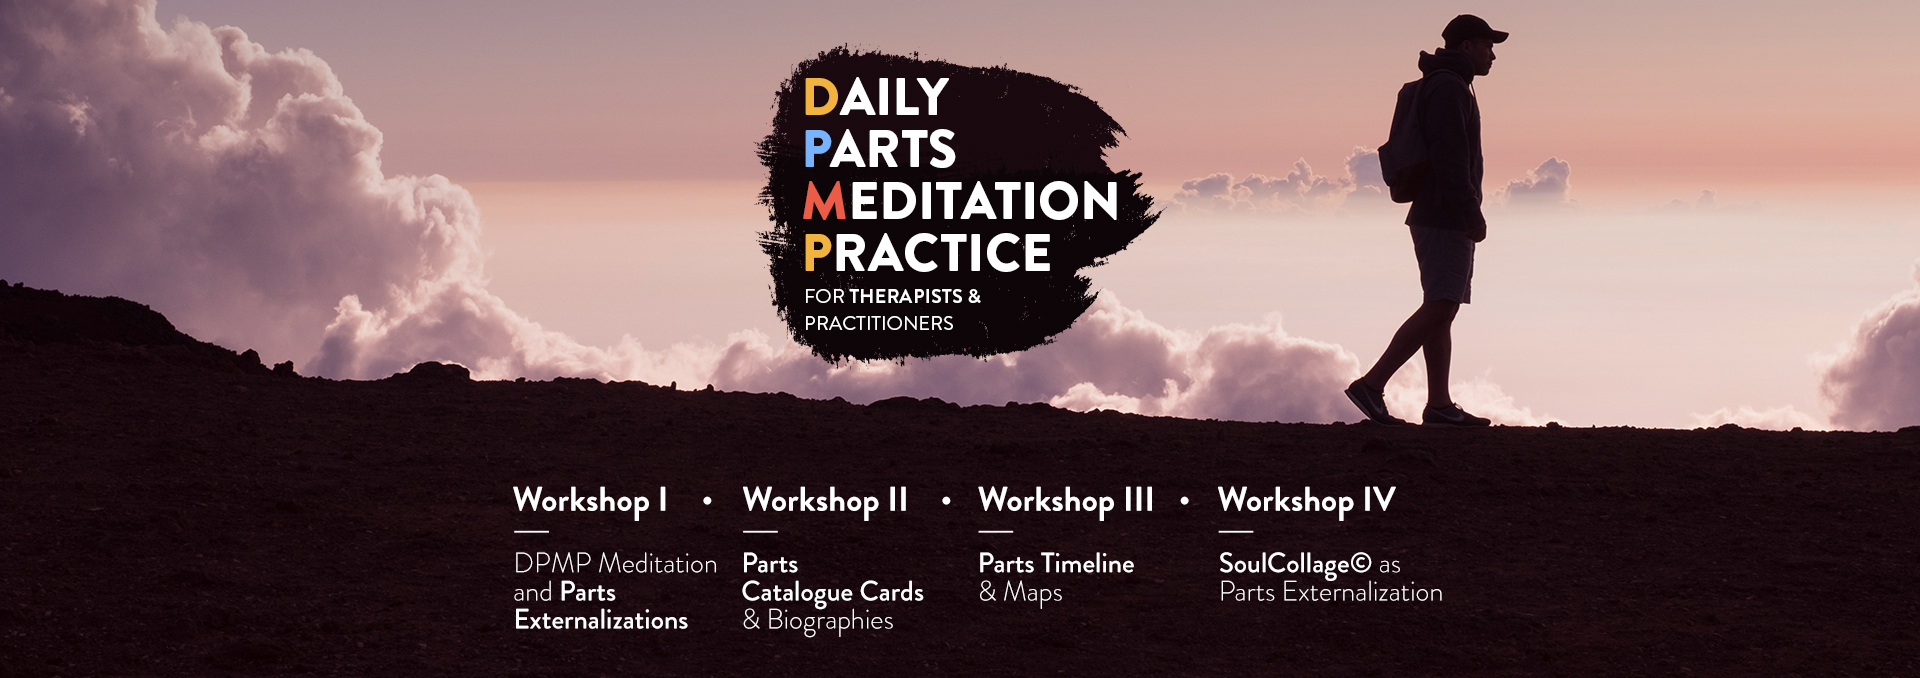 Daily Parts Meditation Practice for Therapists & Practitioners 6